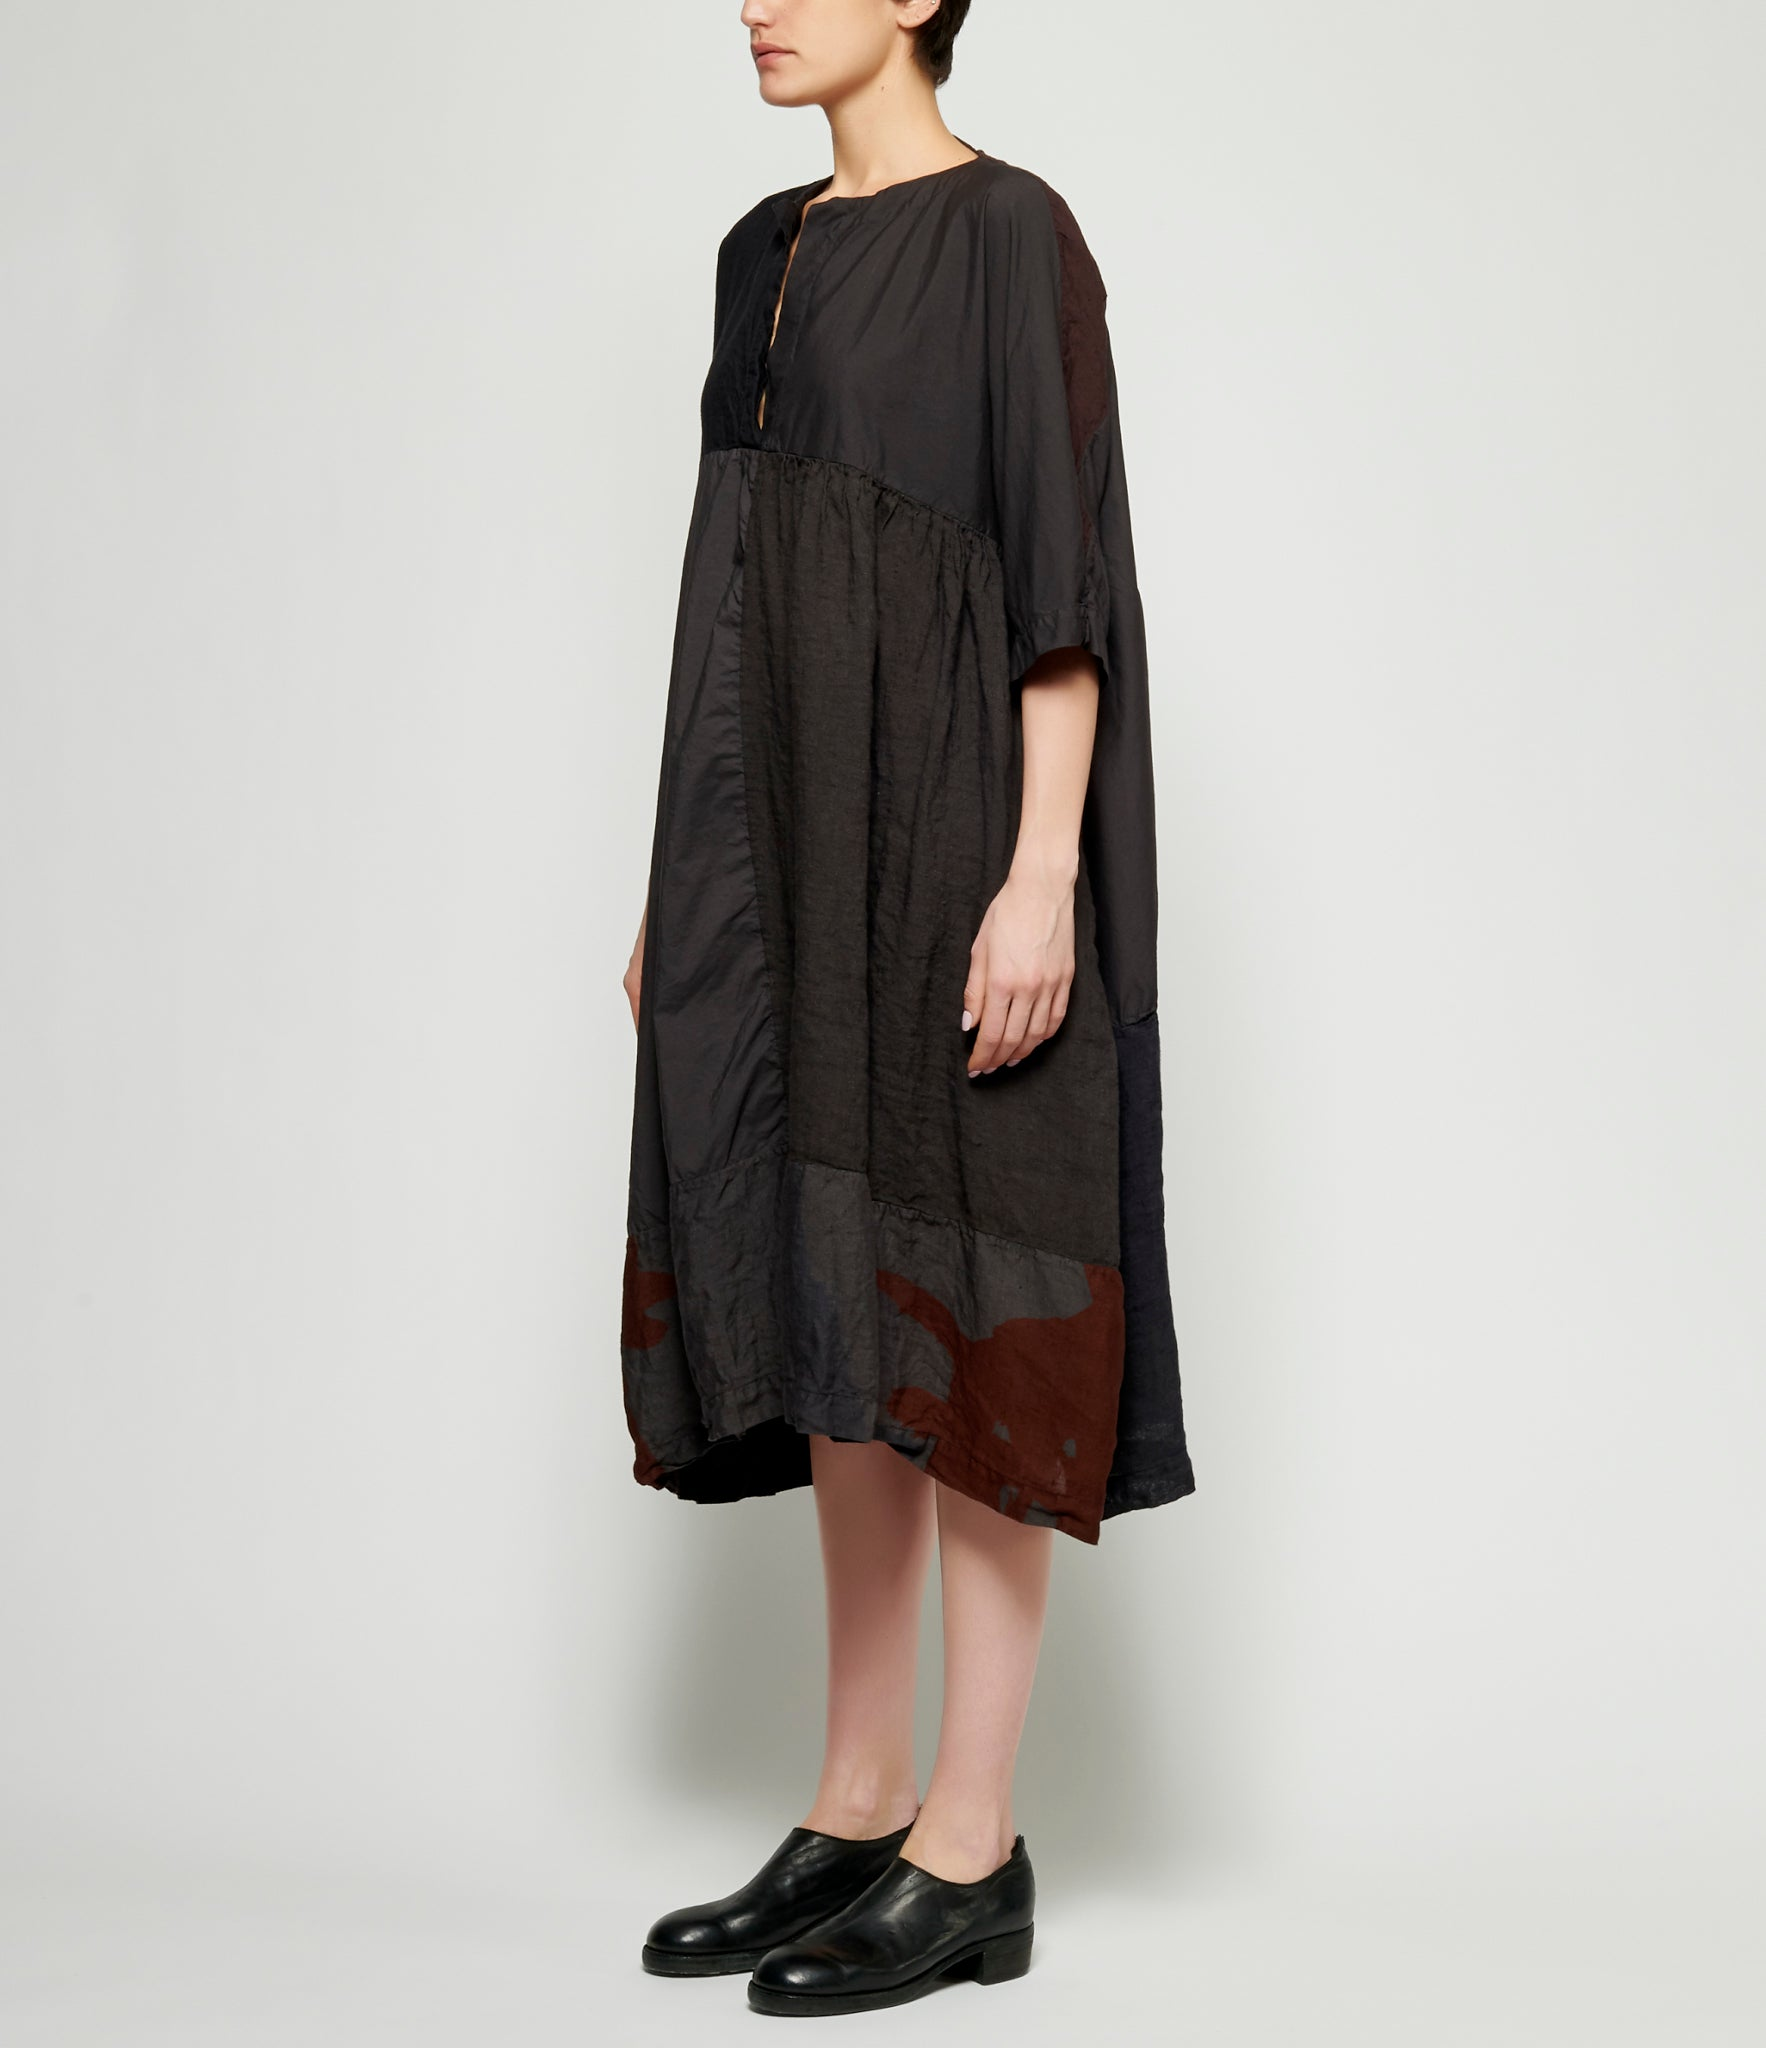 Daniela Gregis Washed Ricetta Stretto Dress